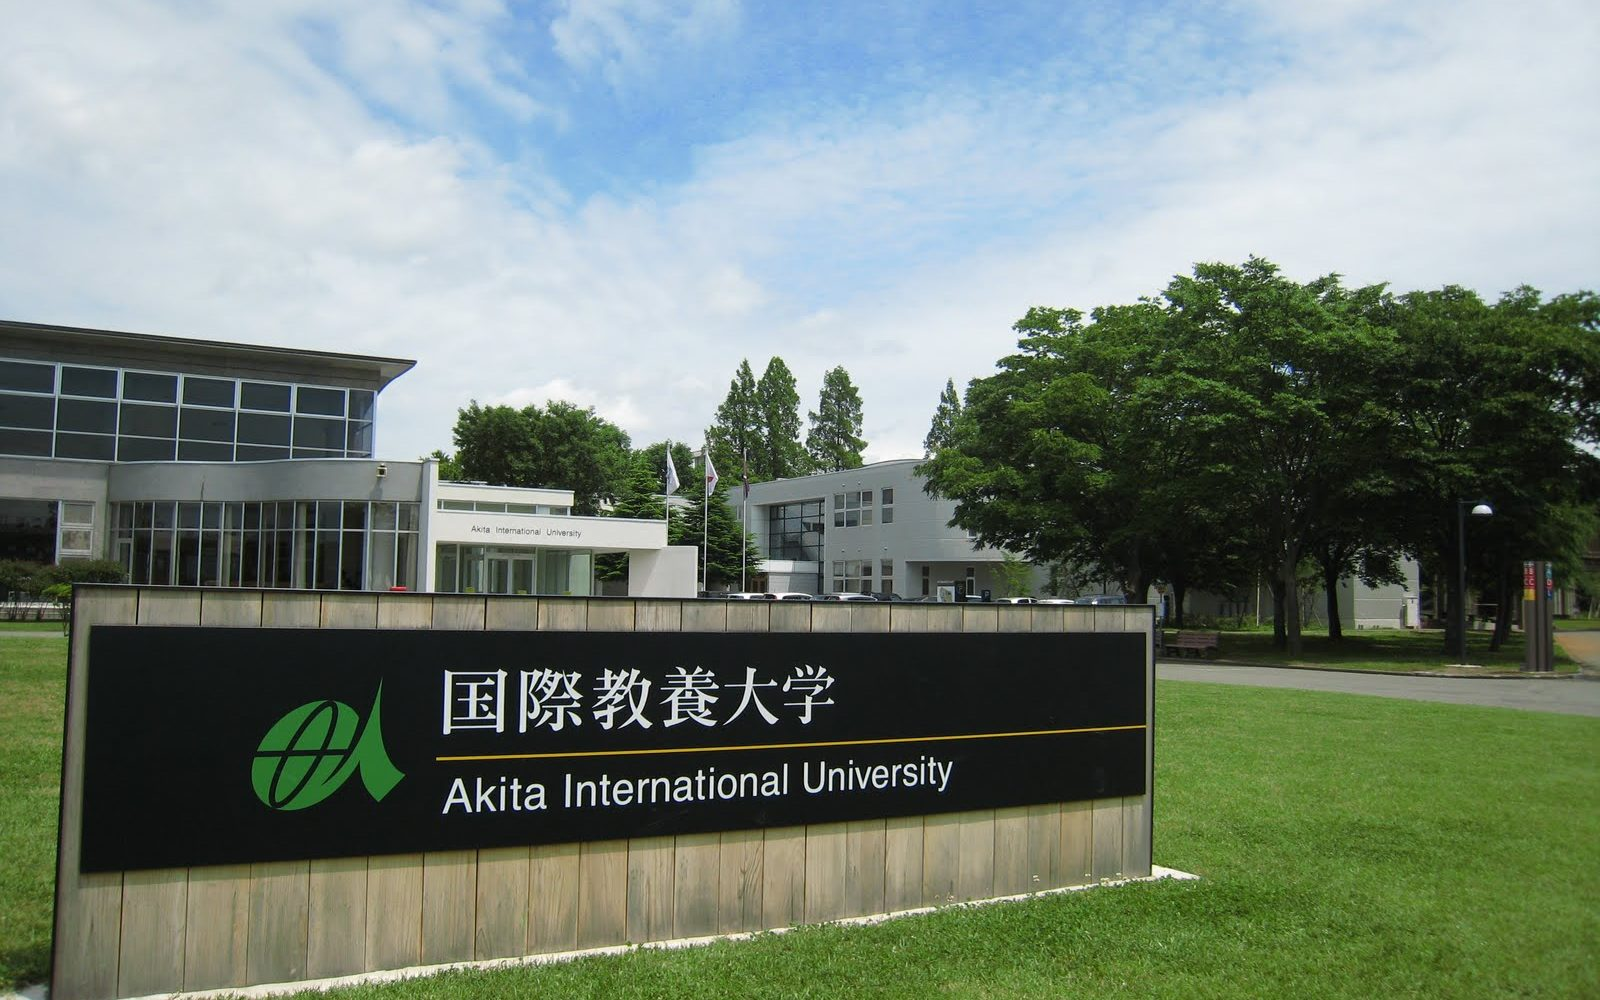 a sign in front of Akita International University